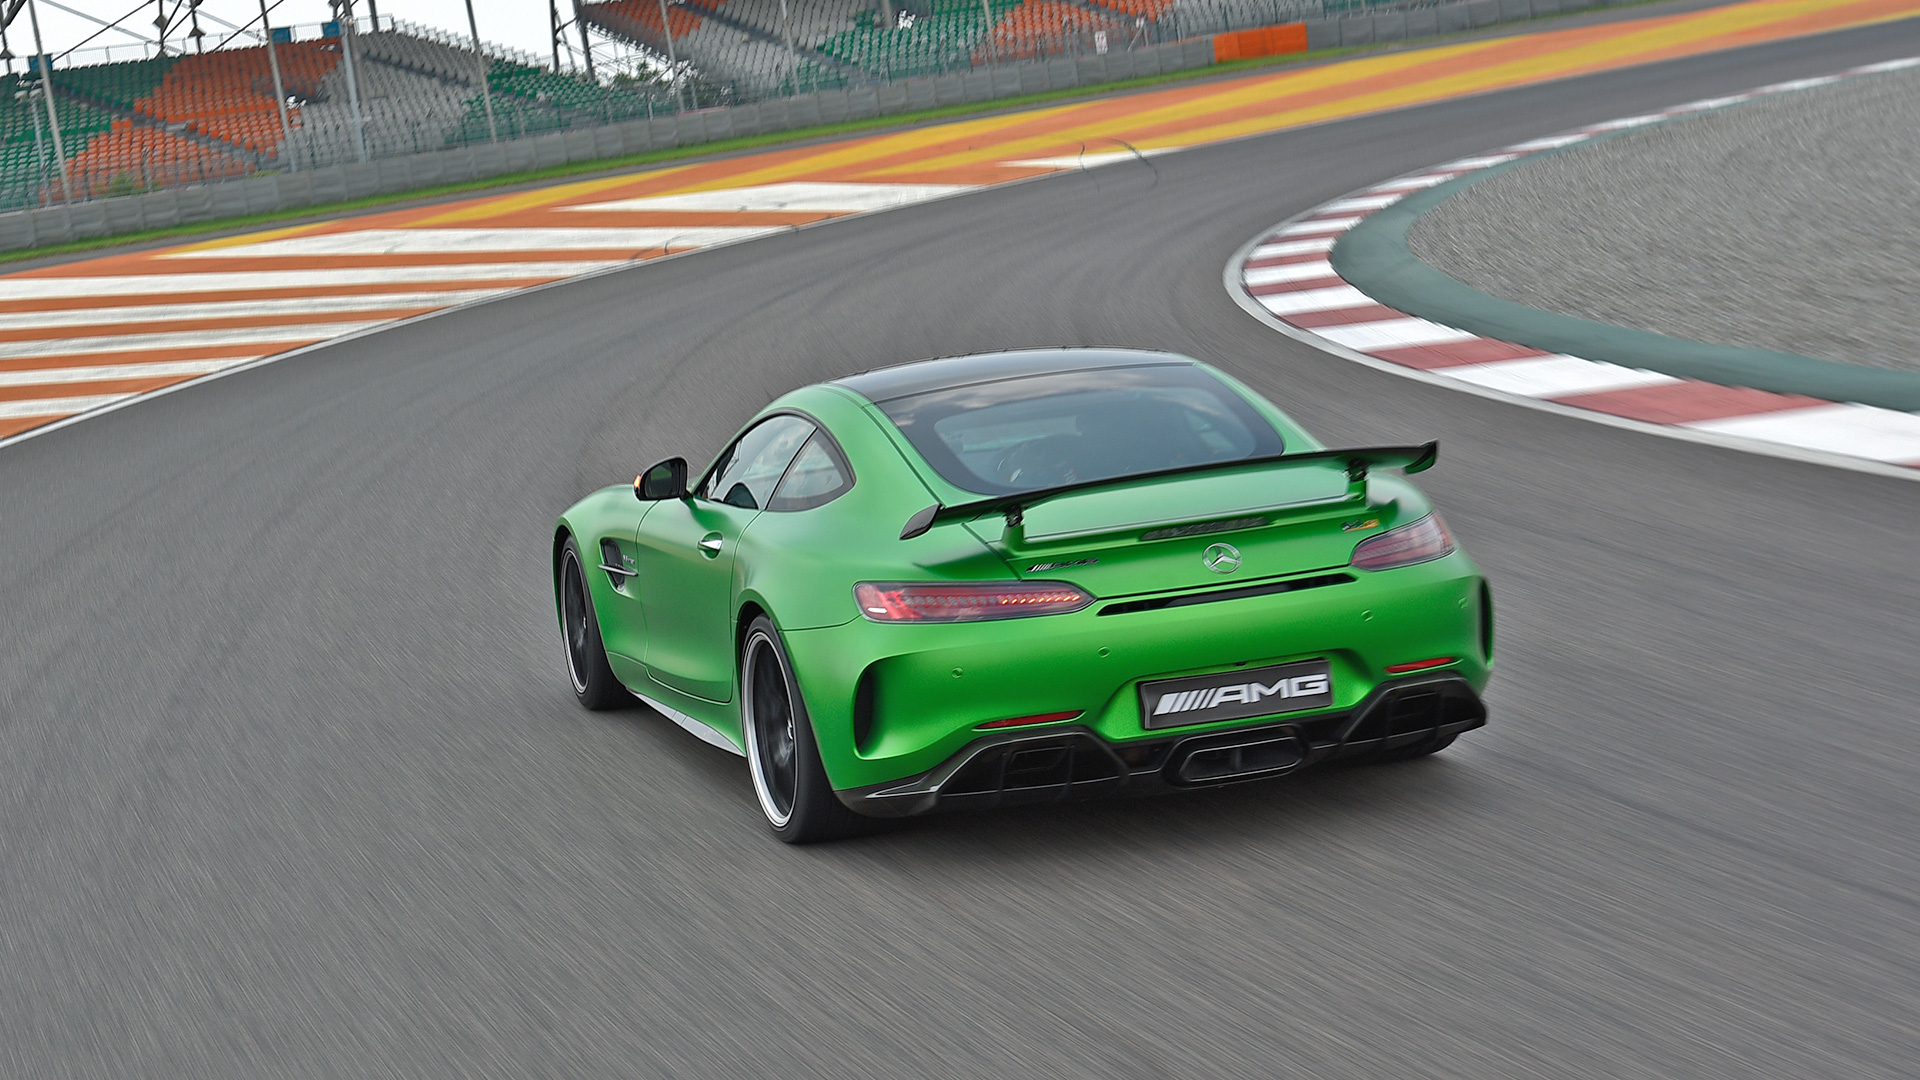 Mercedes benz amg gt 2017 r price mileage reviews for Mercedes benz gtr amg 2017 price